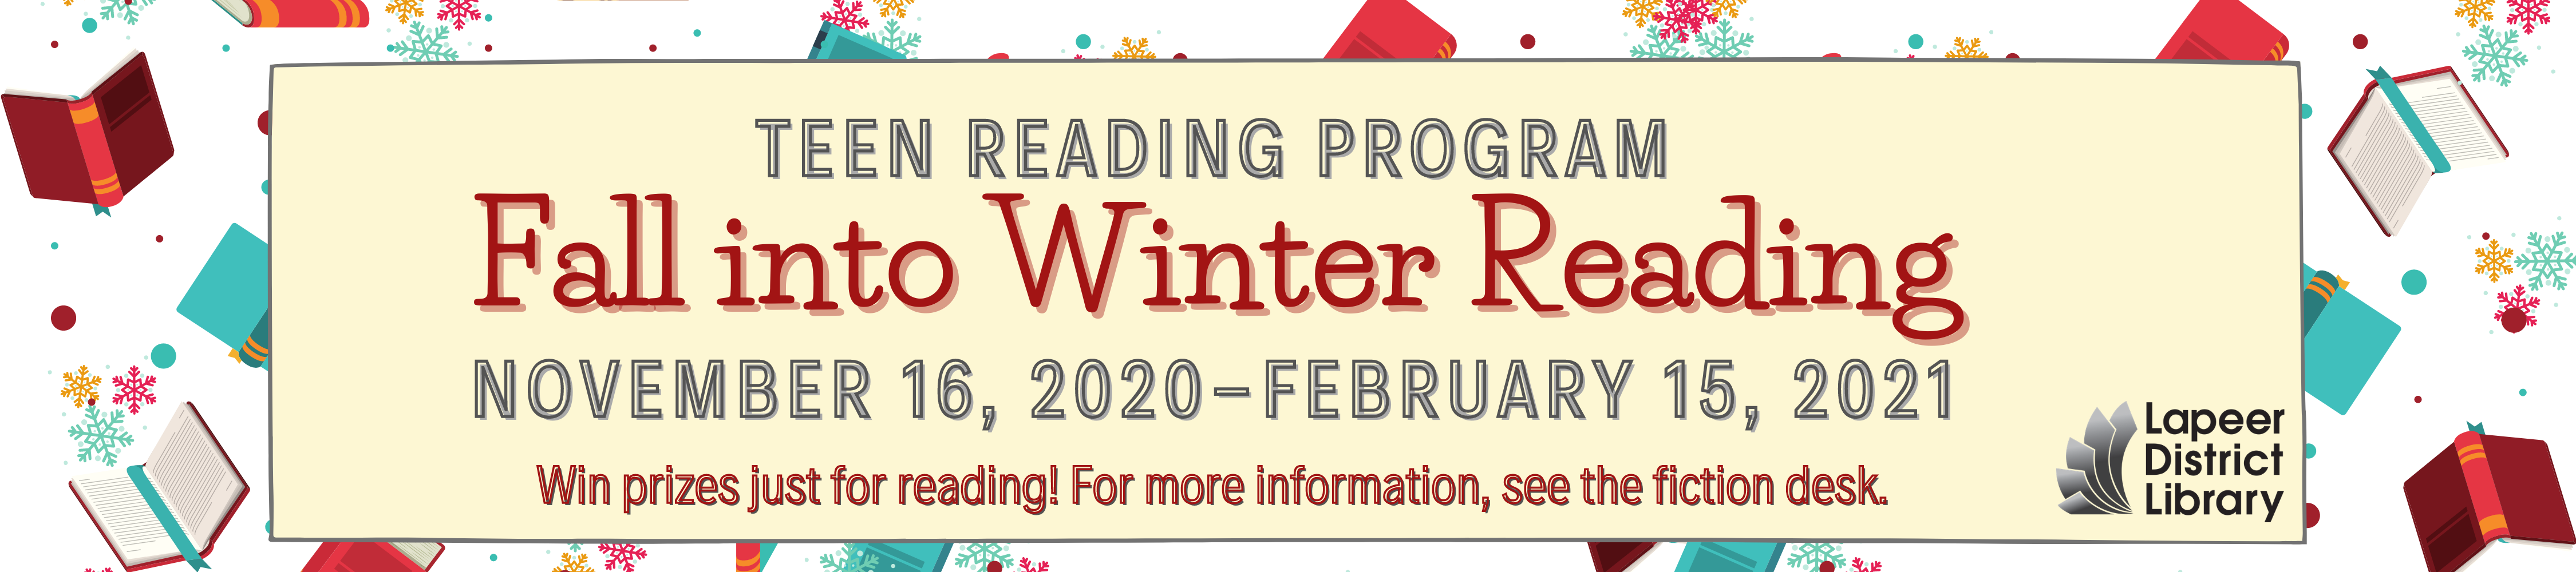 Fall into Winter Reading Teen